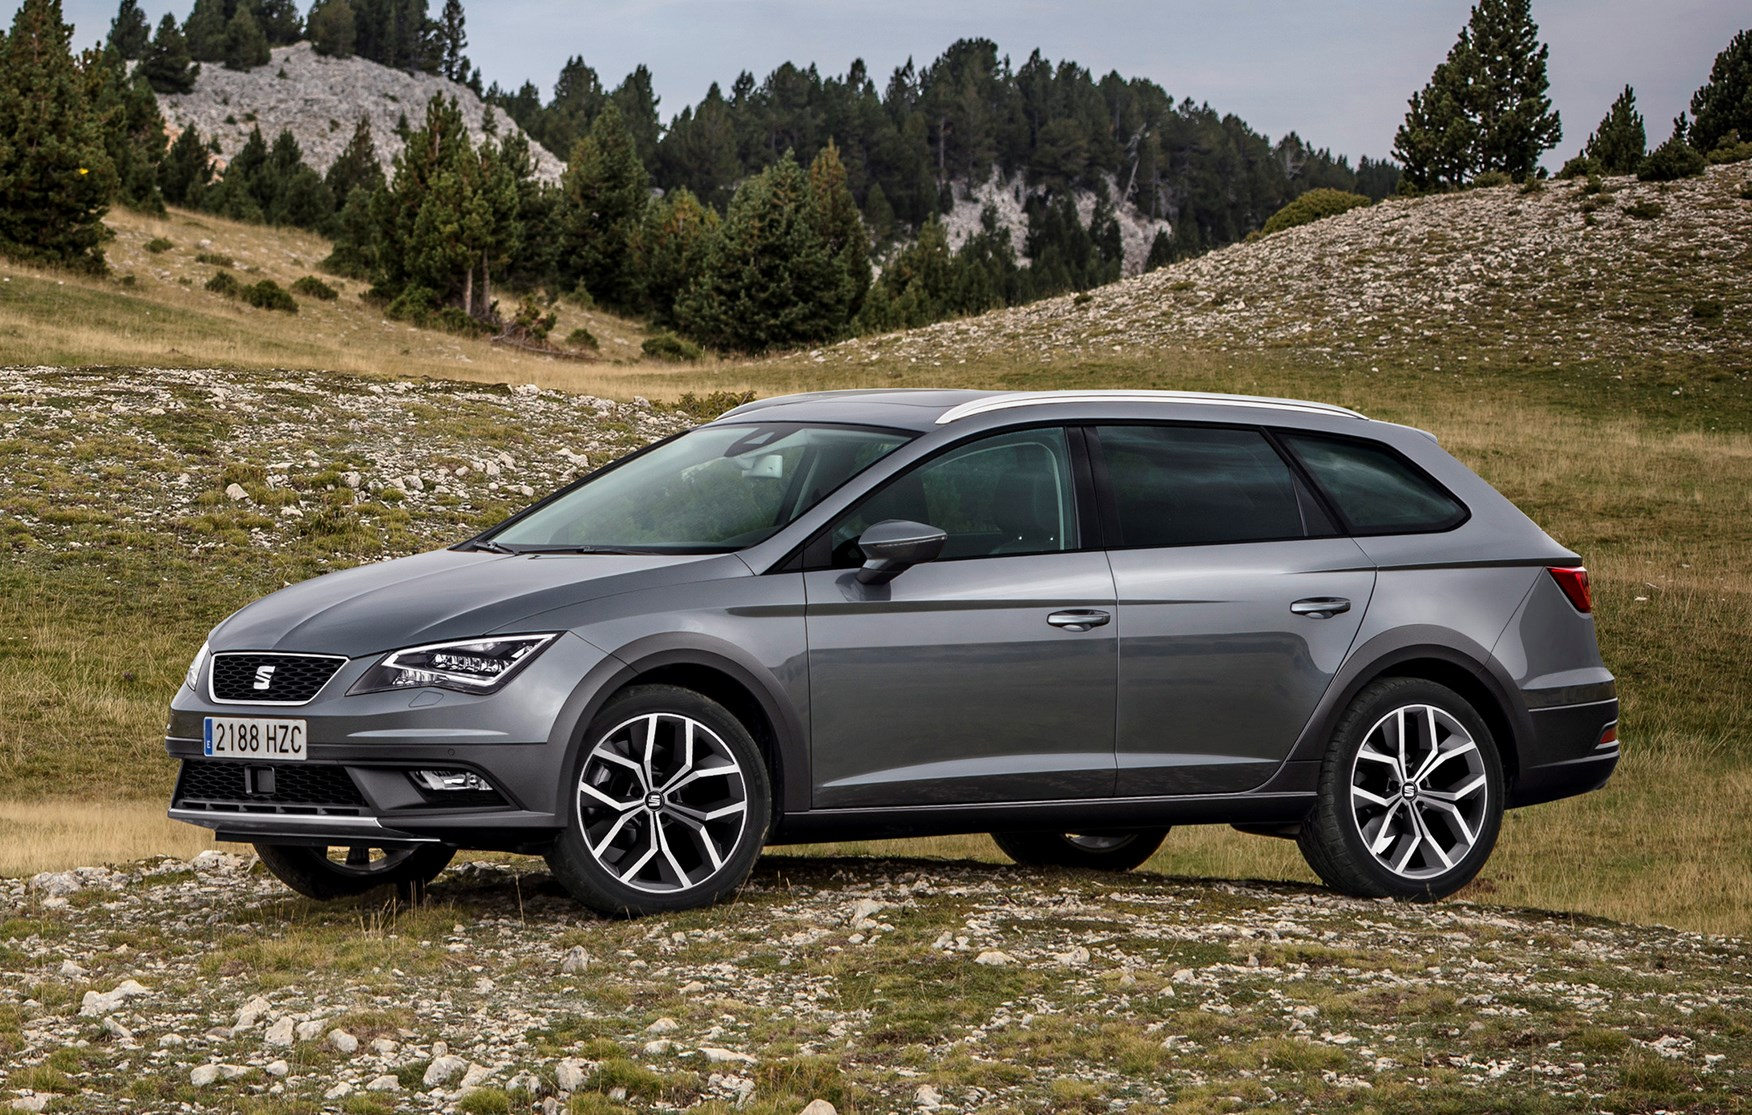 seat leon x perience review 2014 parkers. Black Bedroom Furniture Sets. Home Design Ideas